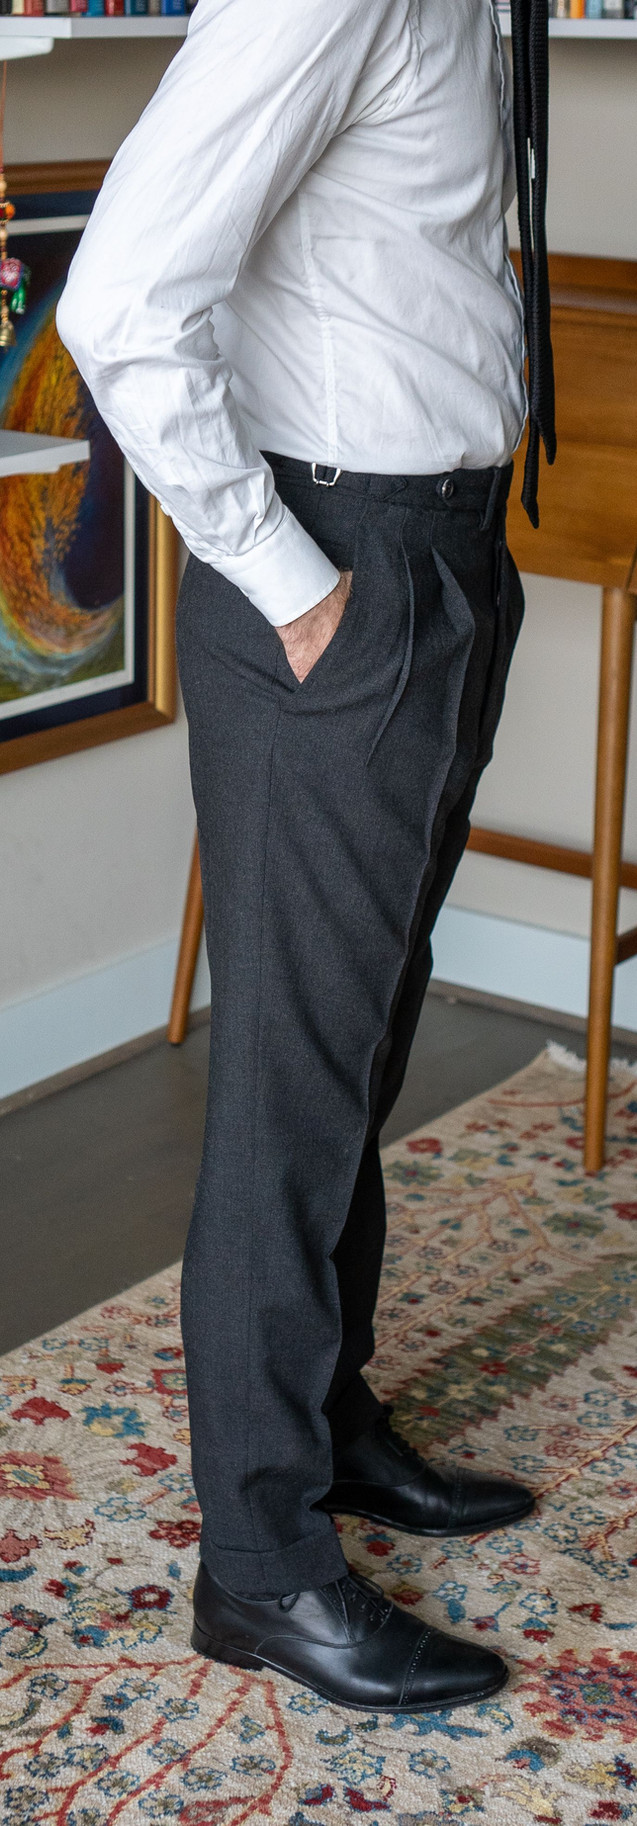 Full-length right side view of Anglo-Italian double-pleated trousers